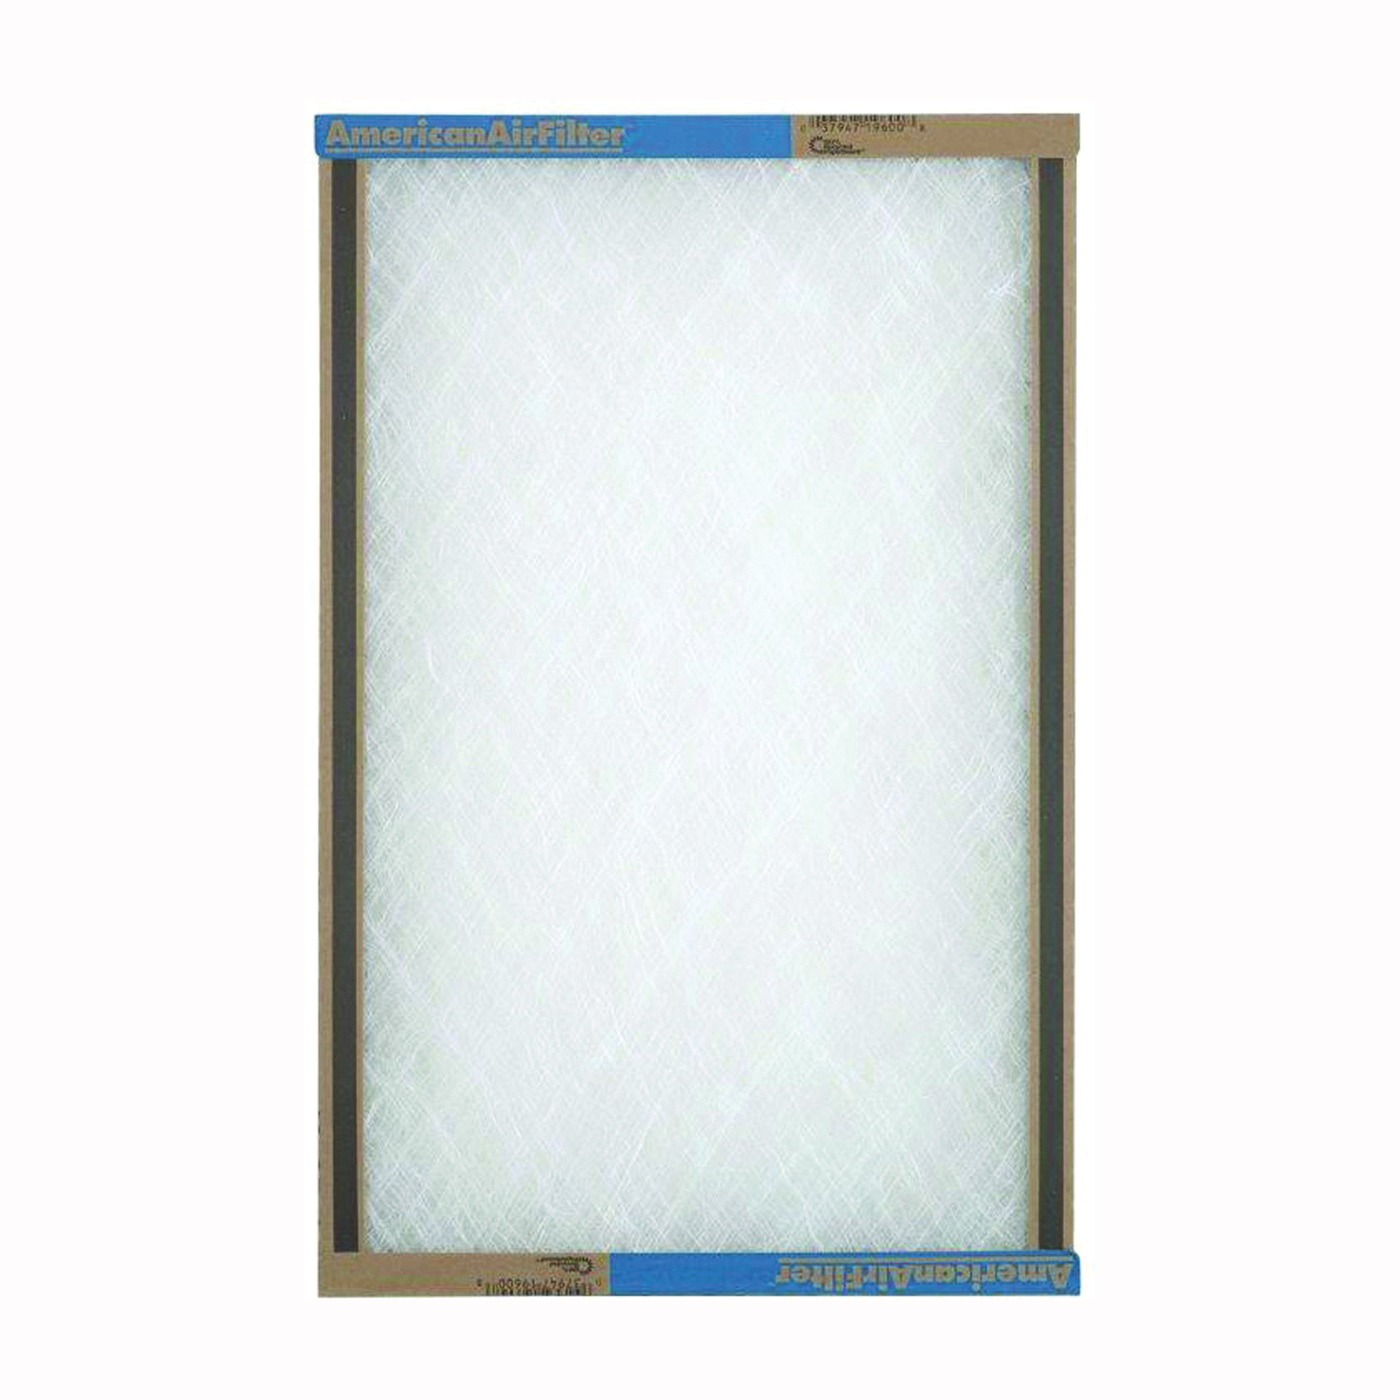 Picture of AAF 220-500-051 Panel Filter, 20 in L, 16 in W, Chipboard Frame